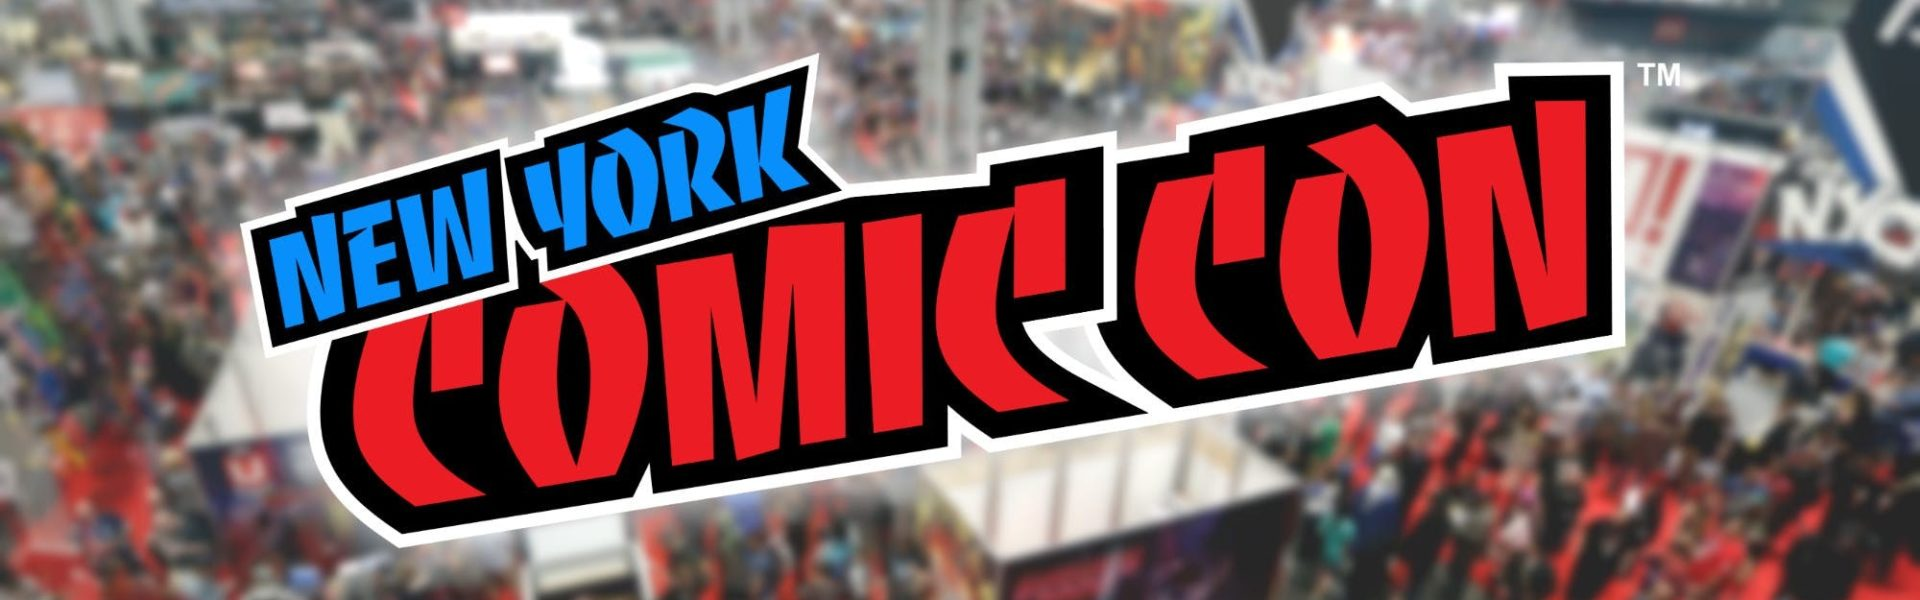 Biggest Highlights of New York Comic Con 2019